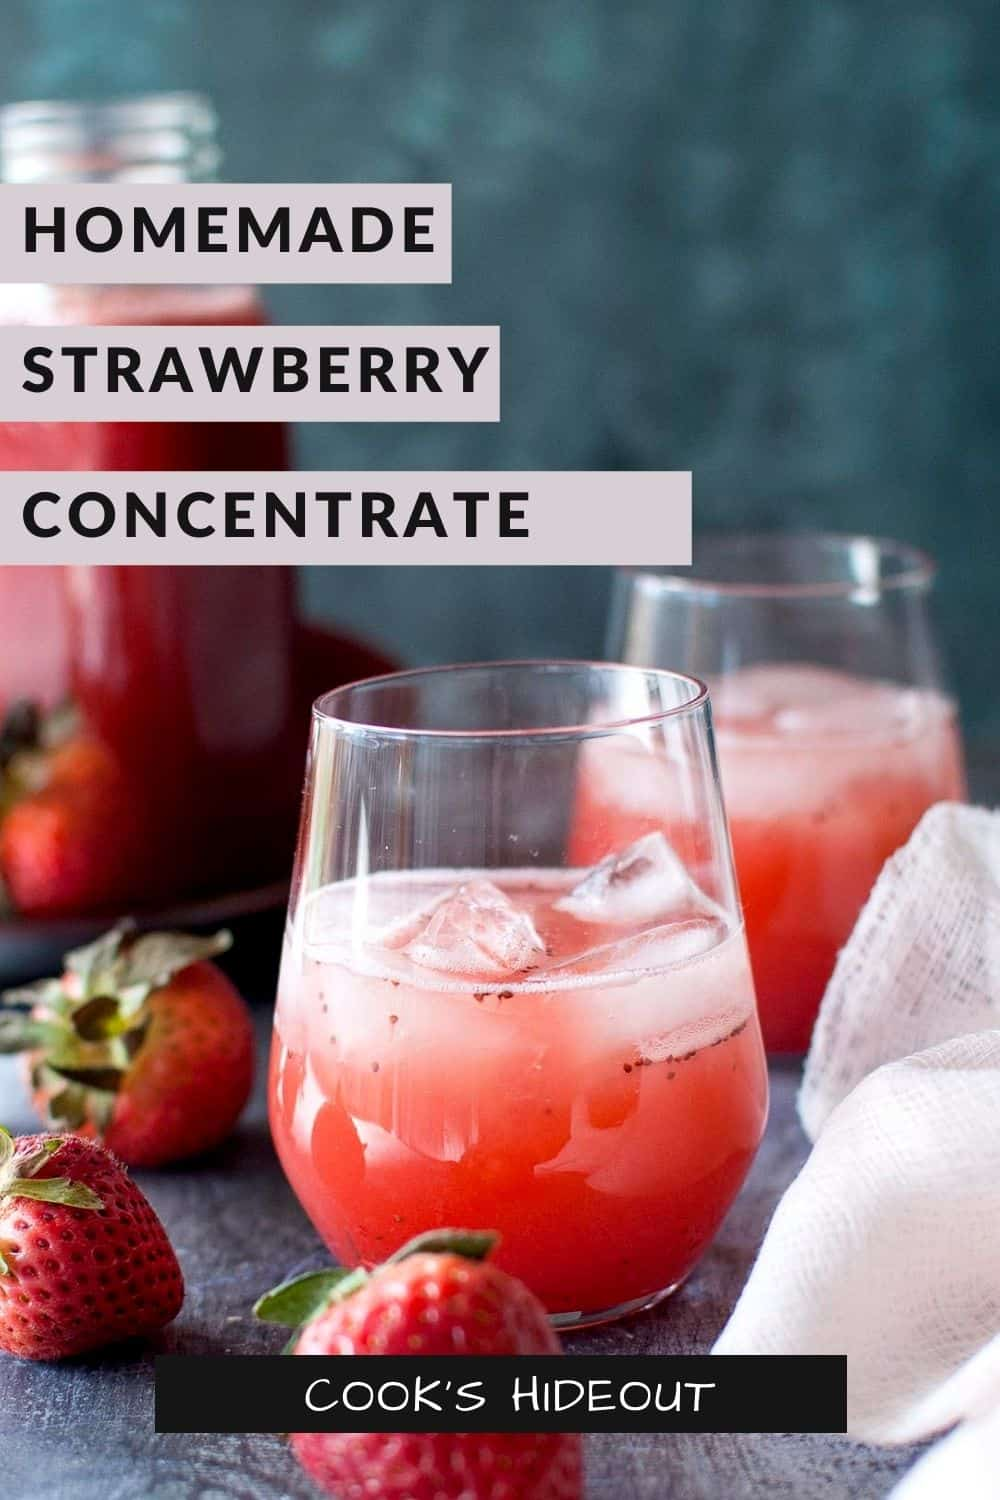 Strawberry juice in a glass with ice cubes